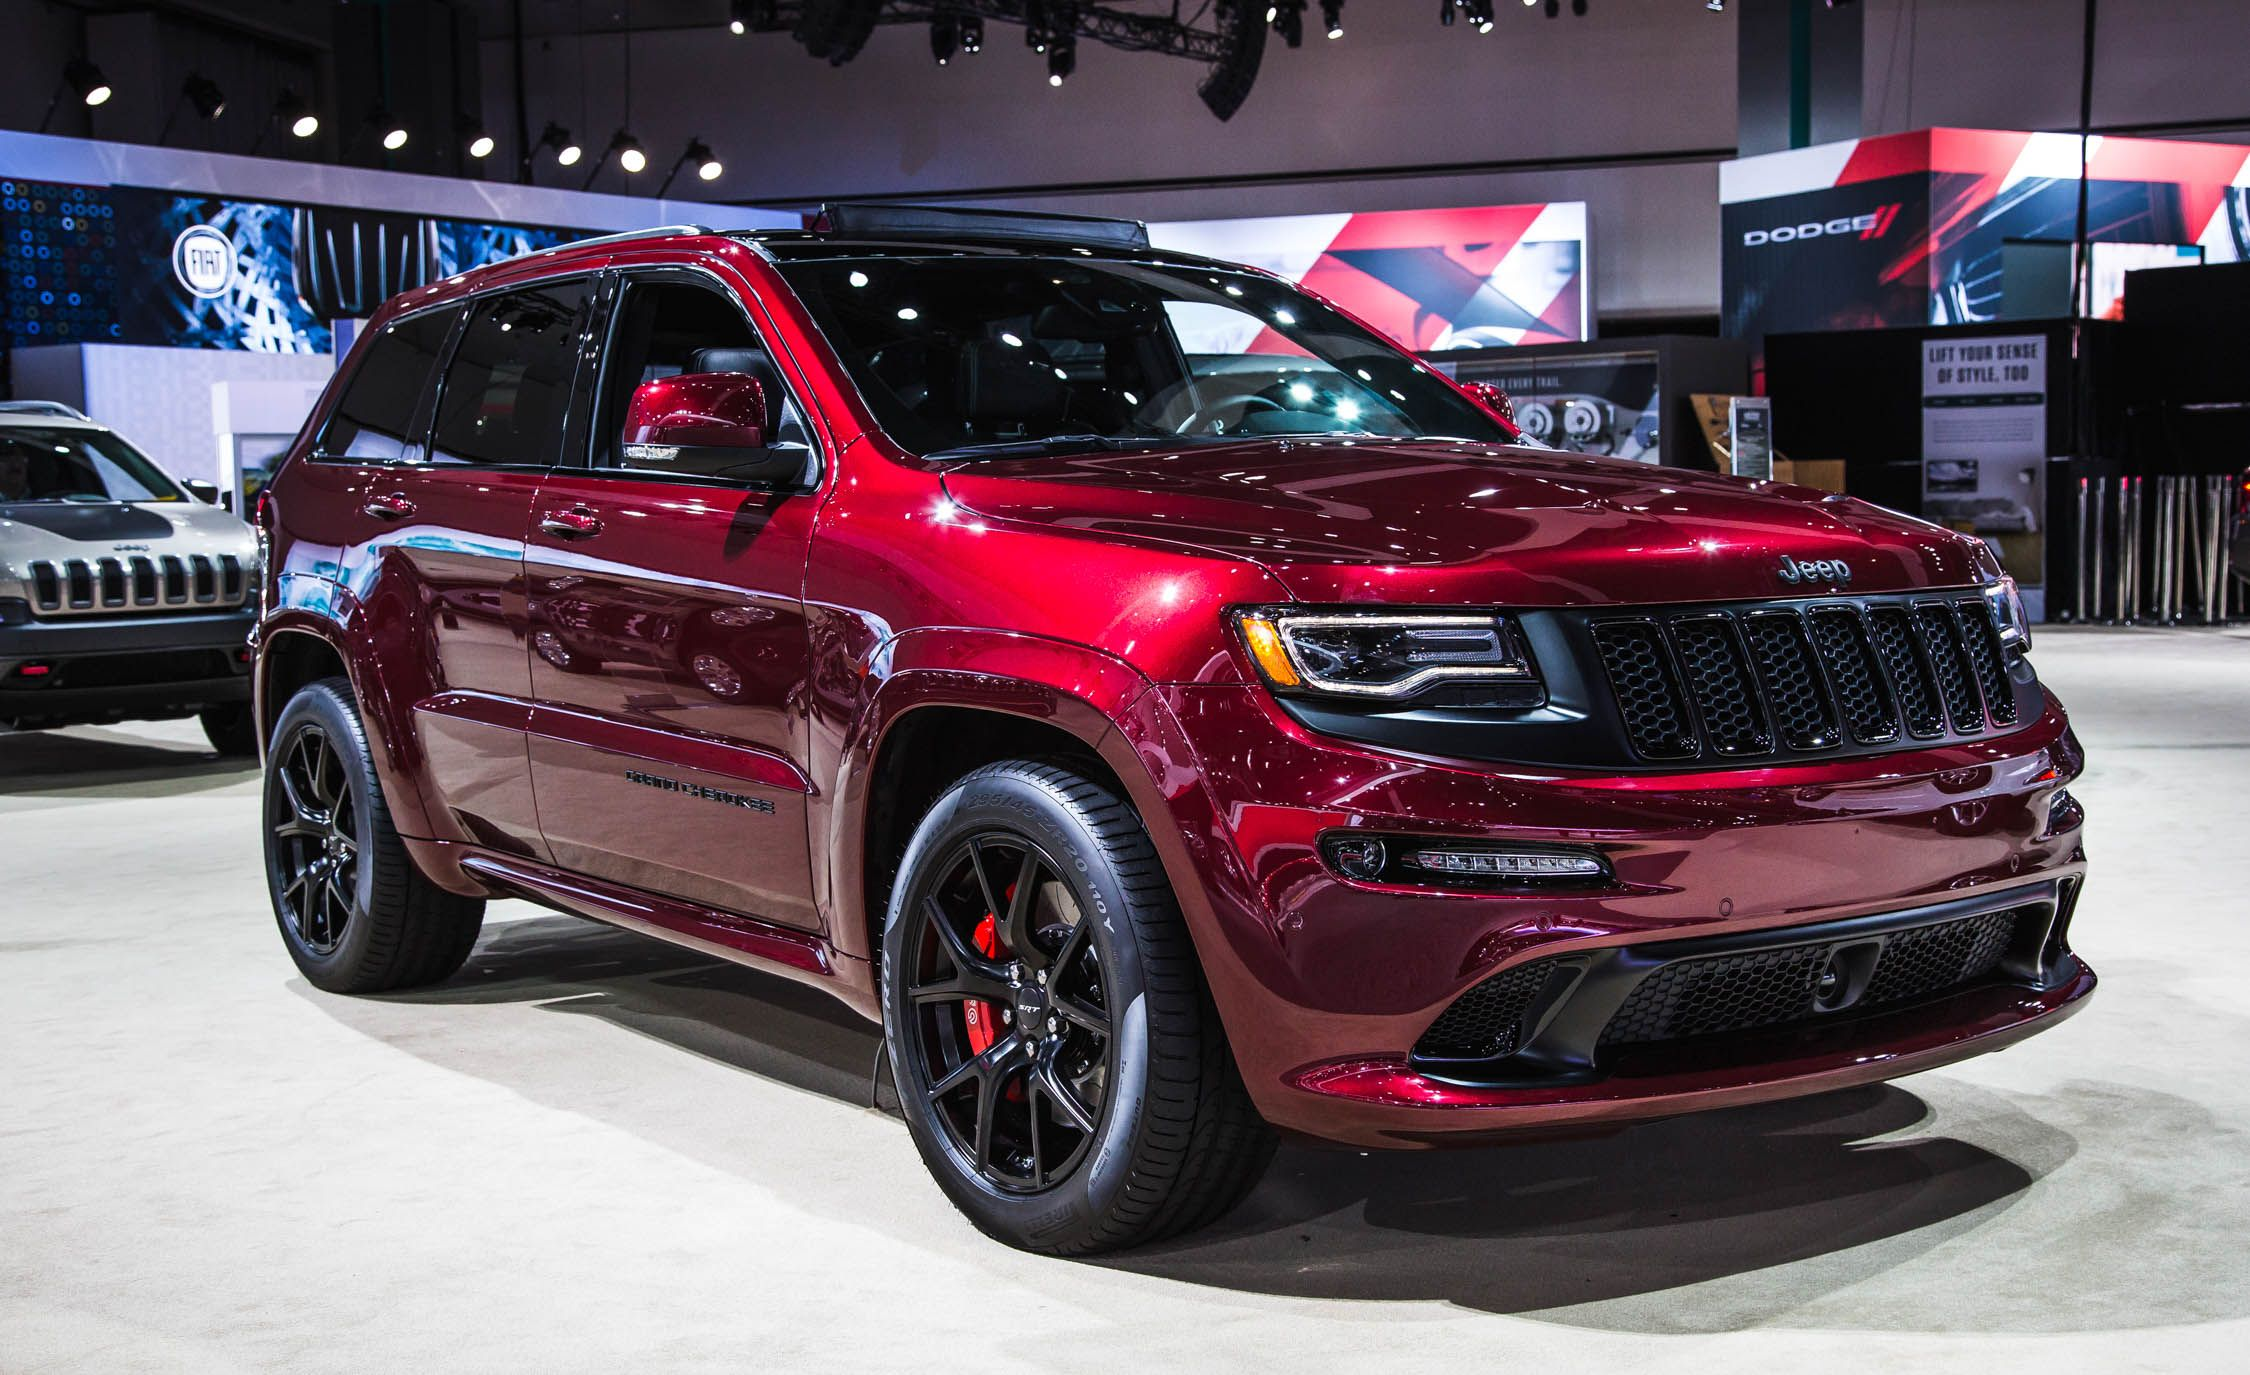 2016 jeep grand cherokee srt pictures photo gallery car and driver. Black Bedroom Furniture Sets. Home Design Ideas